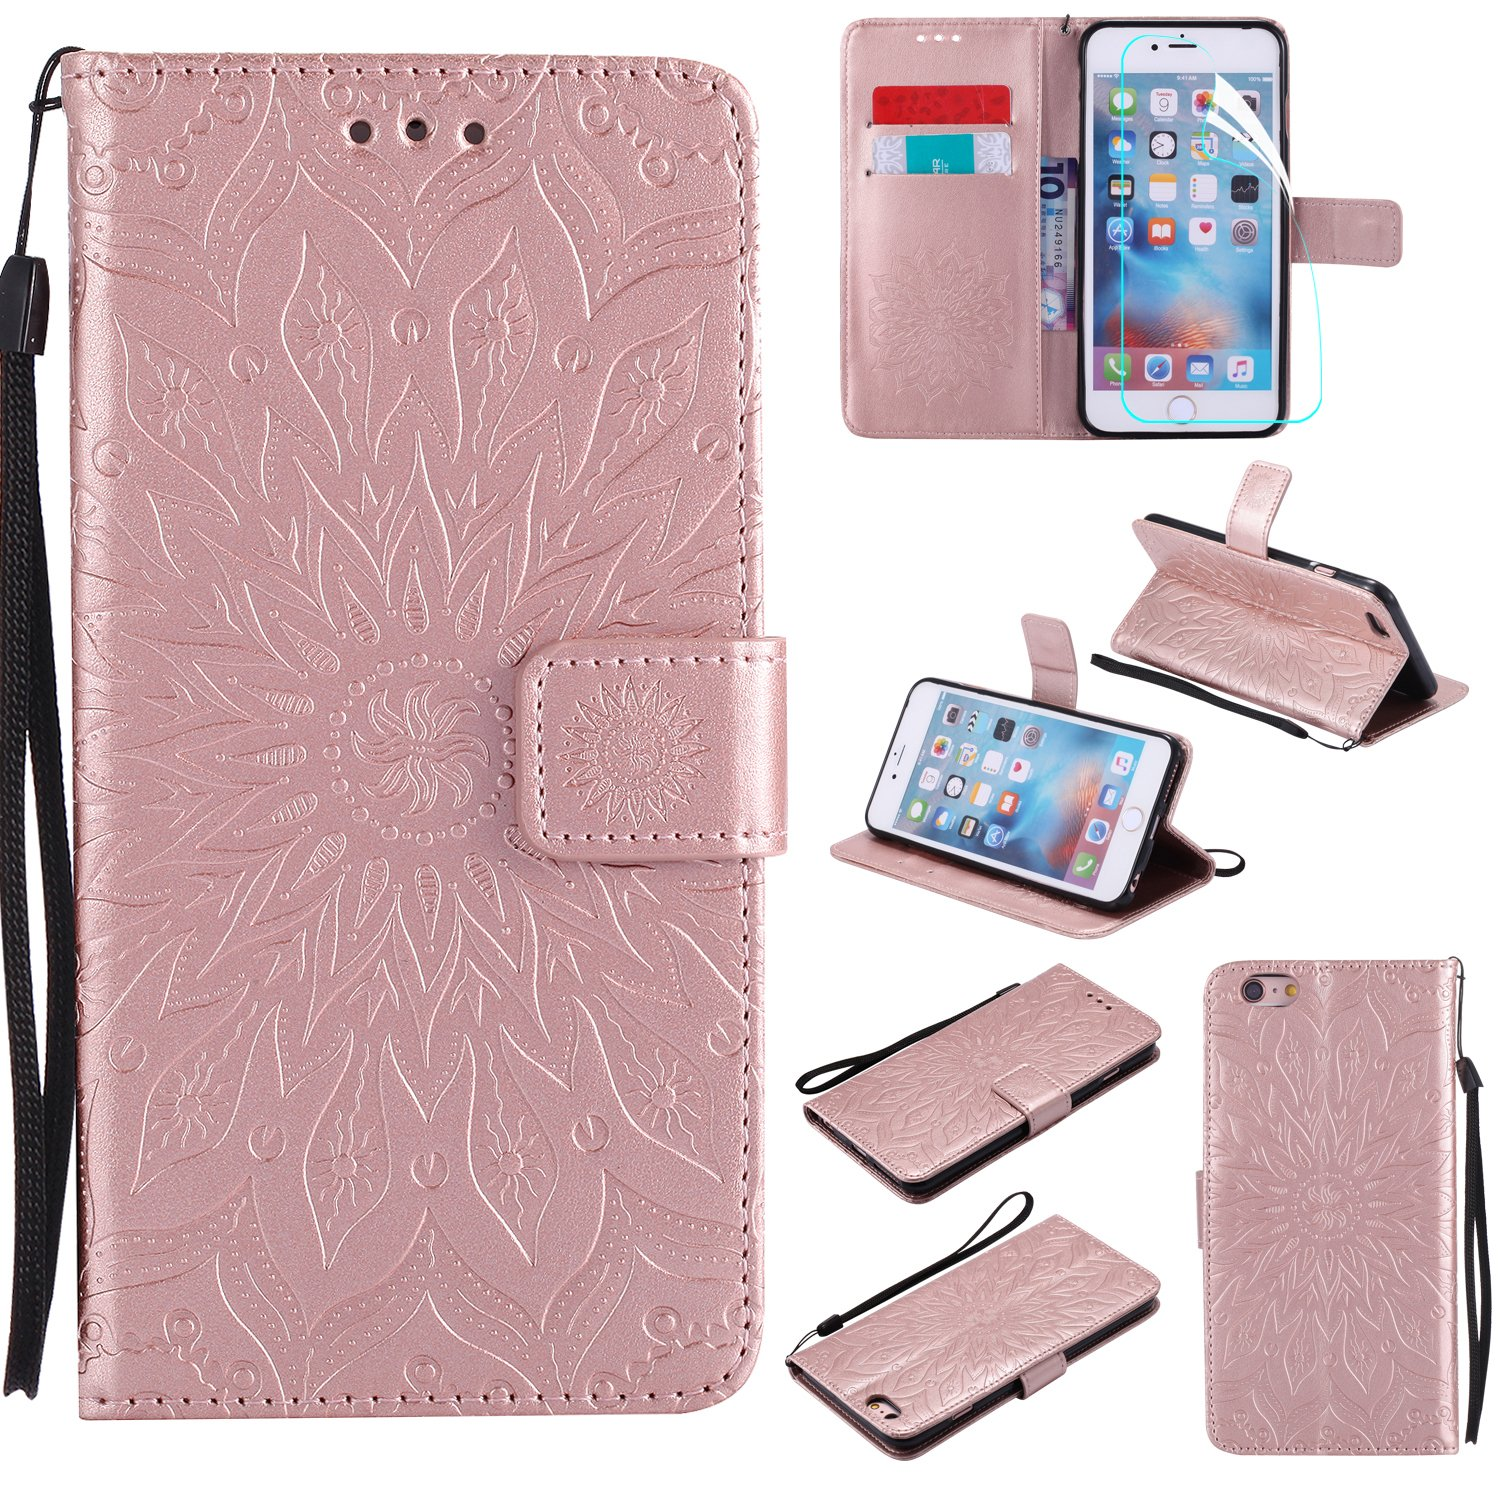 NOMO iPhone 6 Case with Screen Protector,iPhone 6S